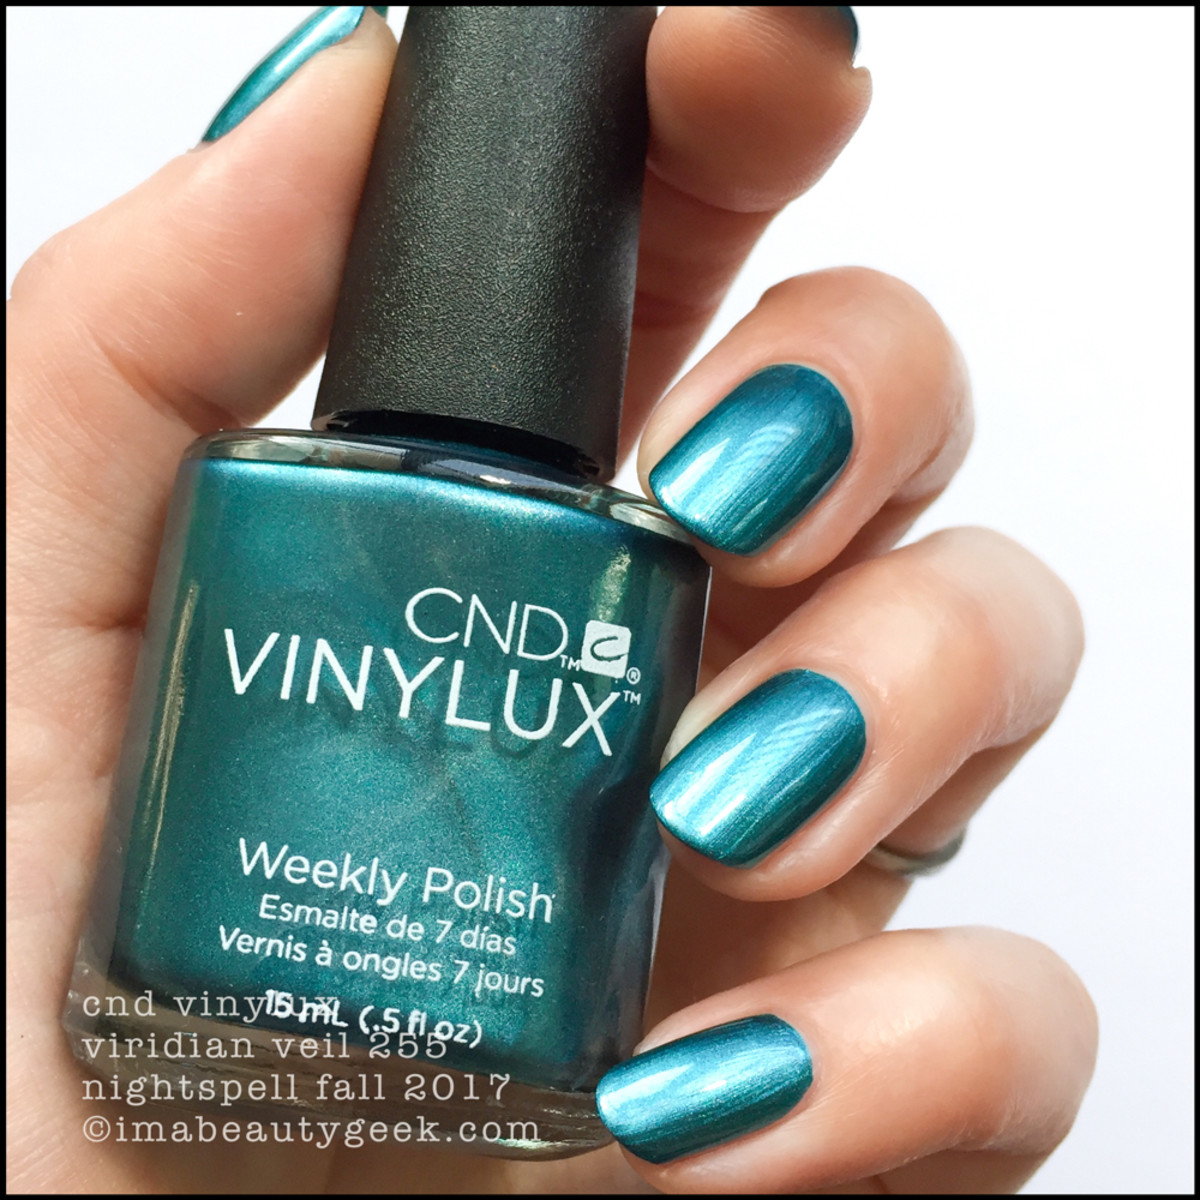 CND Vinylux Veridian Veil - CND Vinylux Nightspell Fall 2017 Collection Swatches